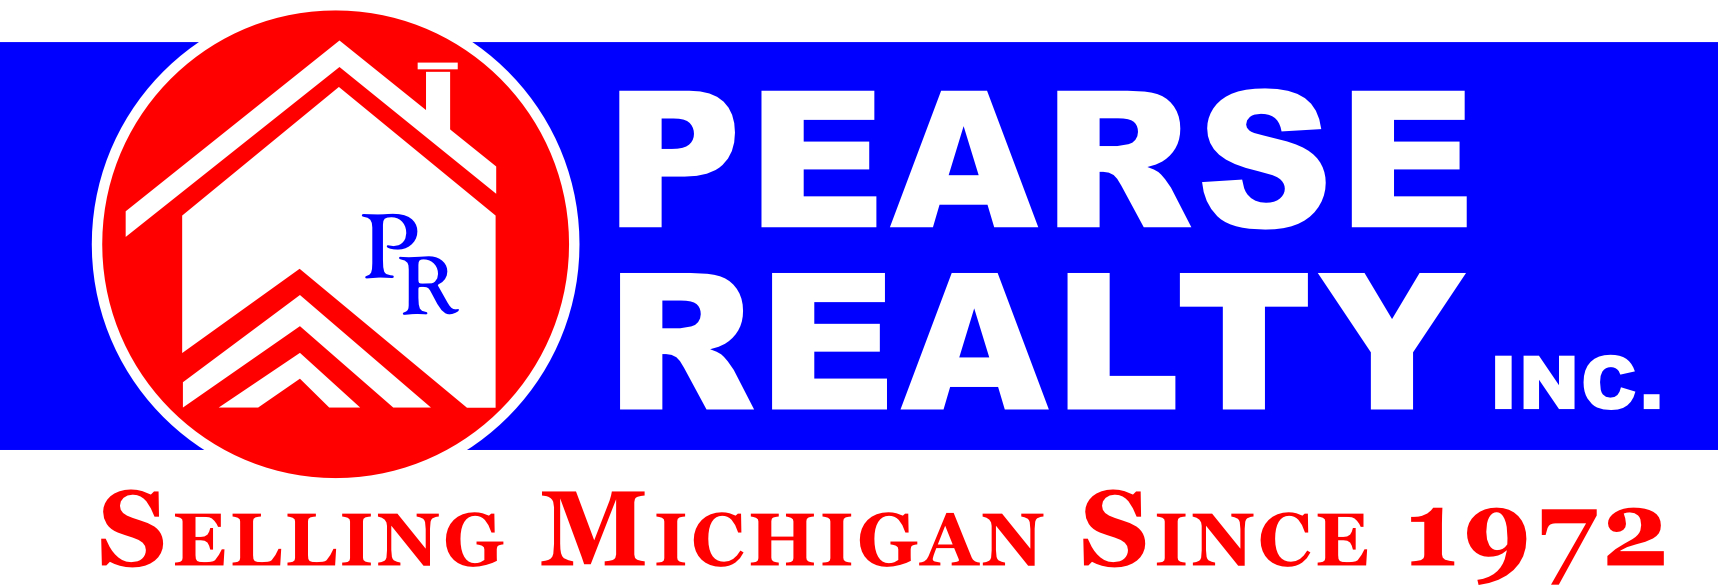 Pearse Realty Logo